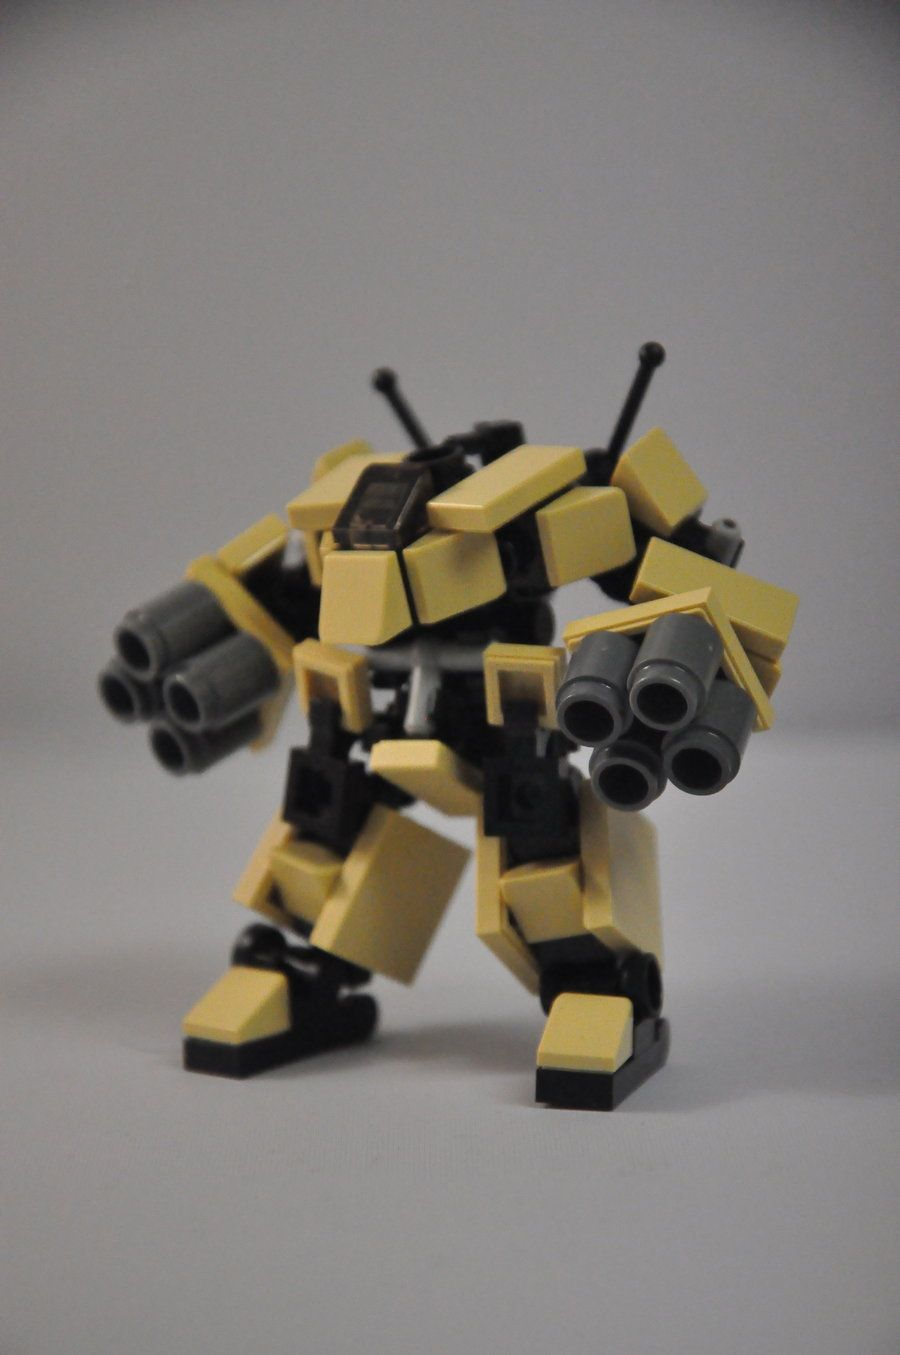 Mechs built from Legos For the game; Mobile Frame Zero. ST-09b Spitting Dragon. Designed by: MittenNinja A variant on the ST-09 Iguana designed for long range fire support. Twin Heavy Missile Pods 2d6+d8 Ra Advanced Targeting Systems 2d6Y